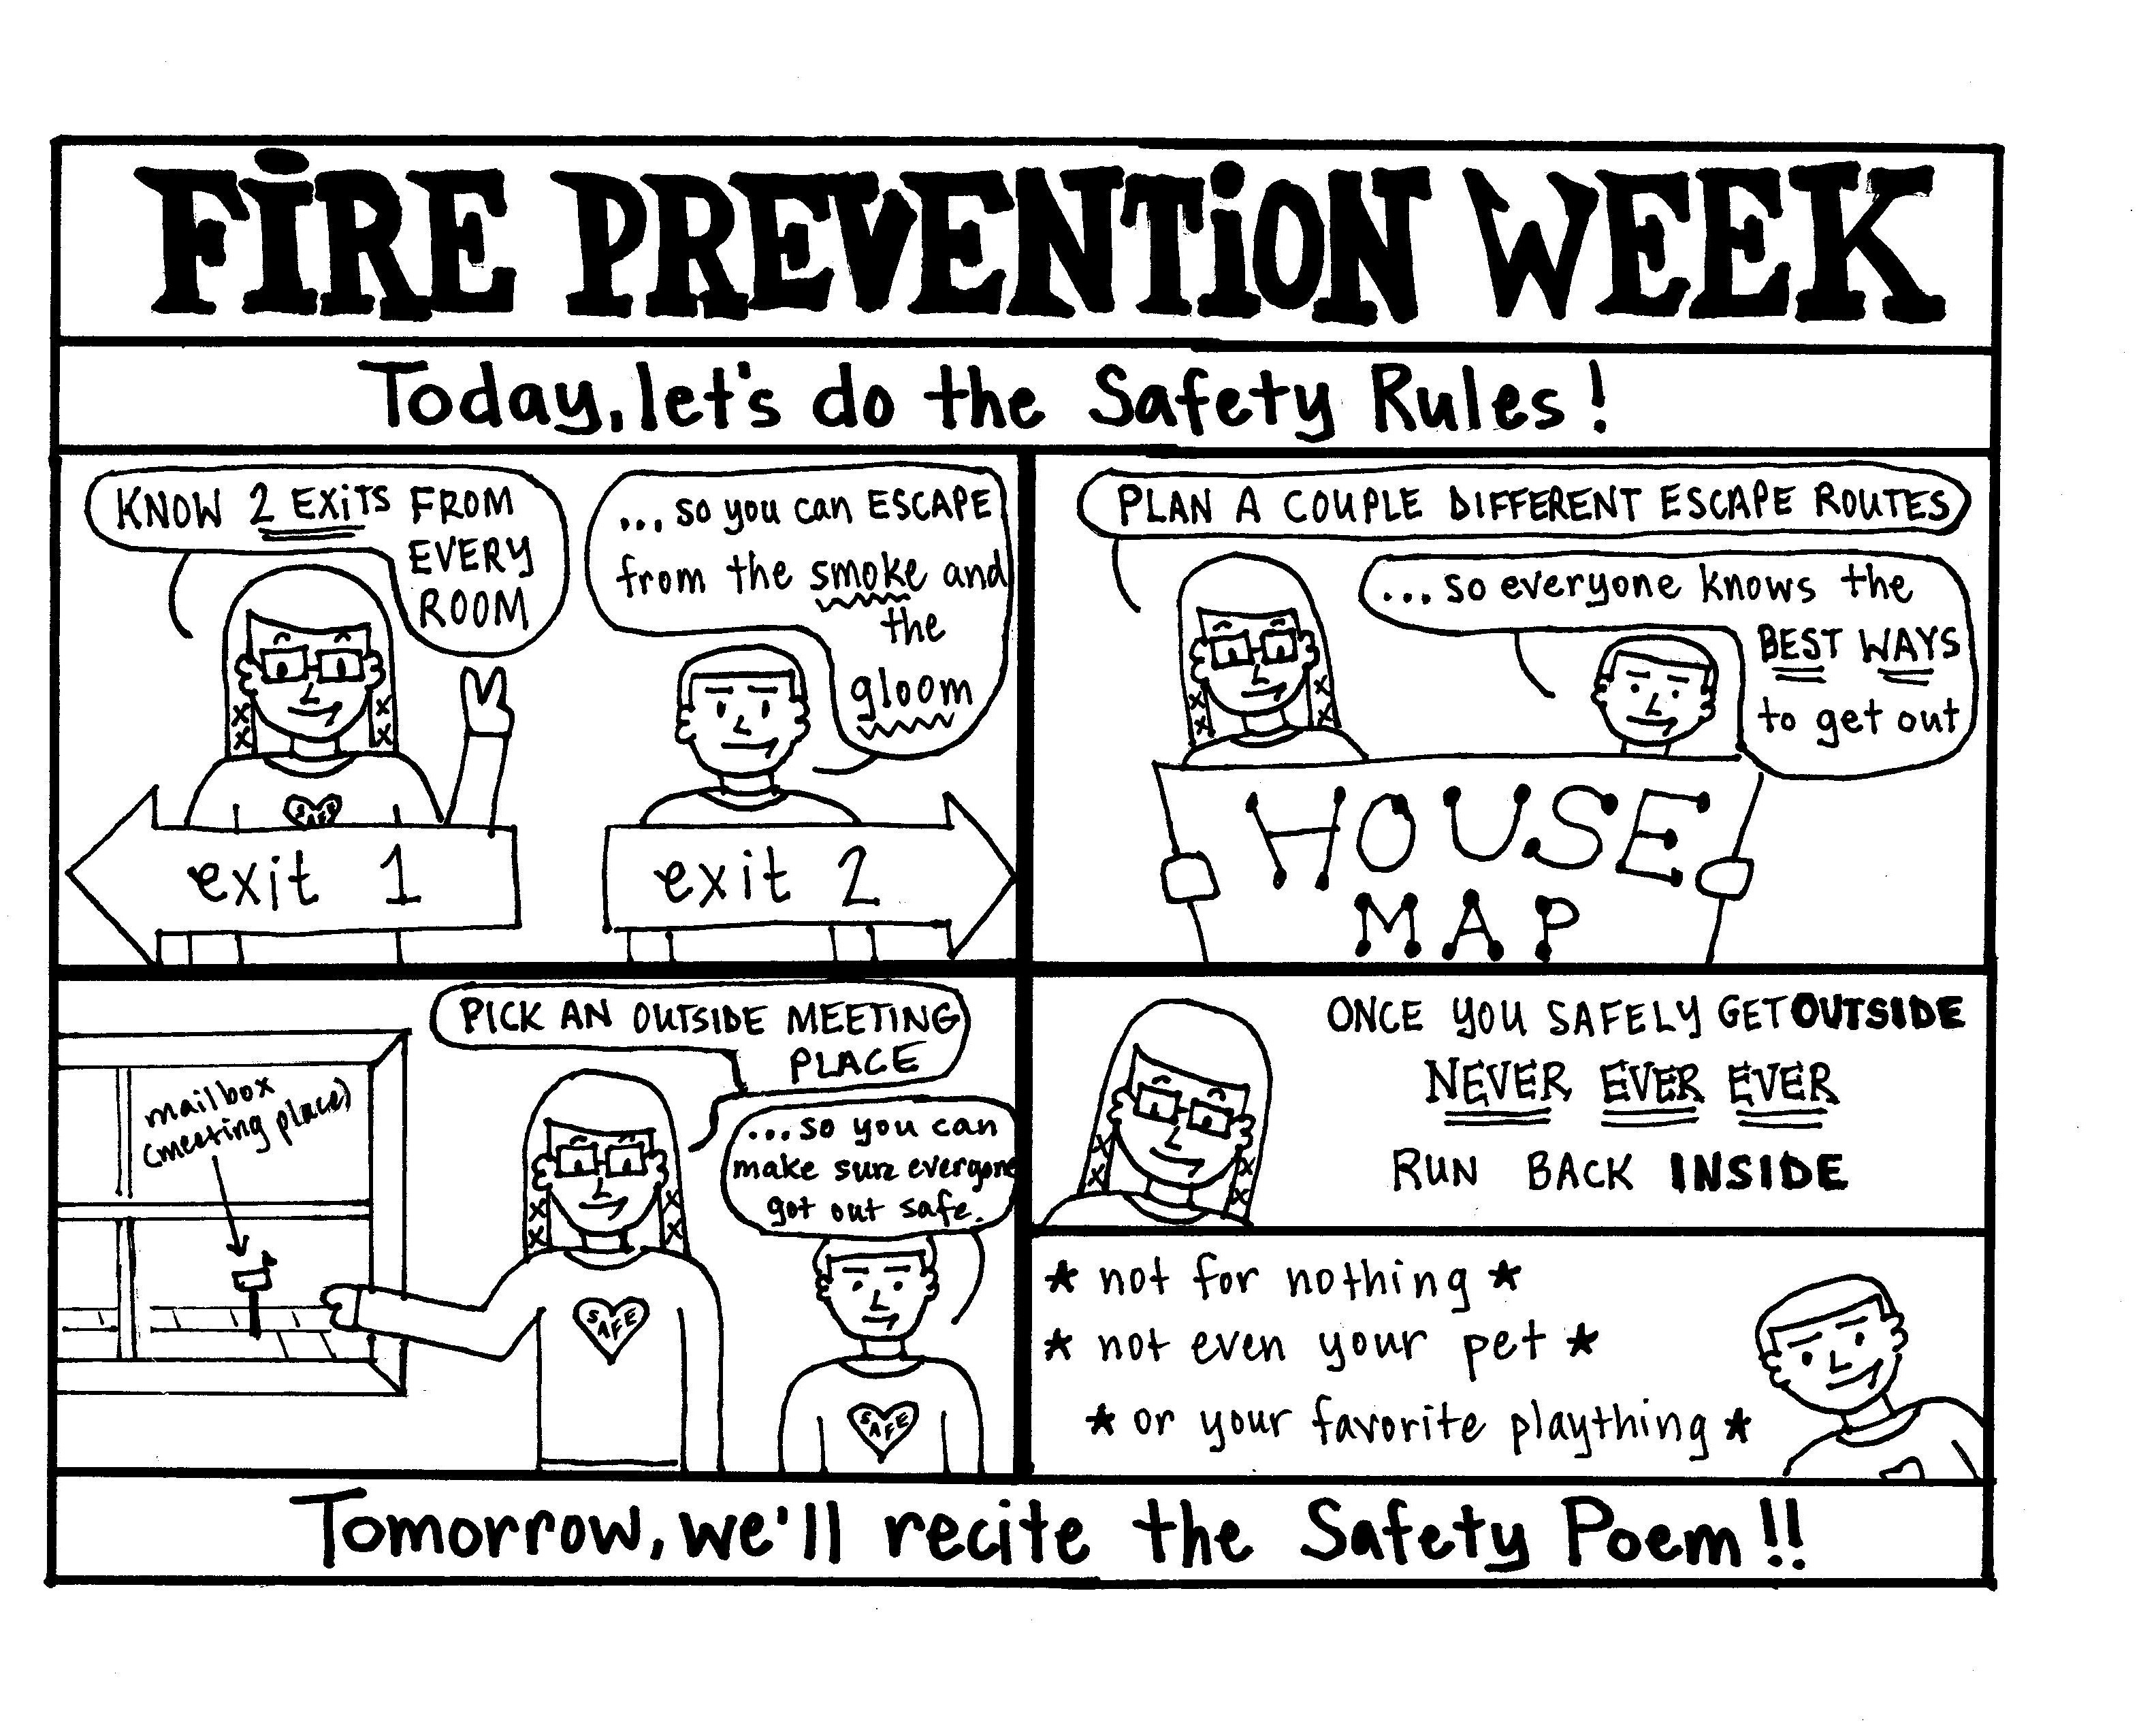 safety signs coloring pages Download-Road Safety Coloring Pages Free Printable Safety Coloring Pages Inspirational Colouring Pages 1-q